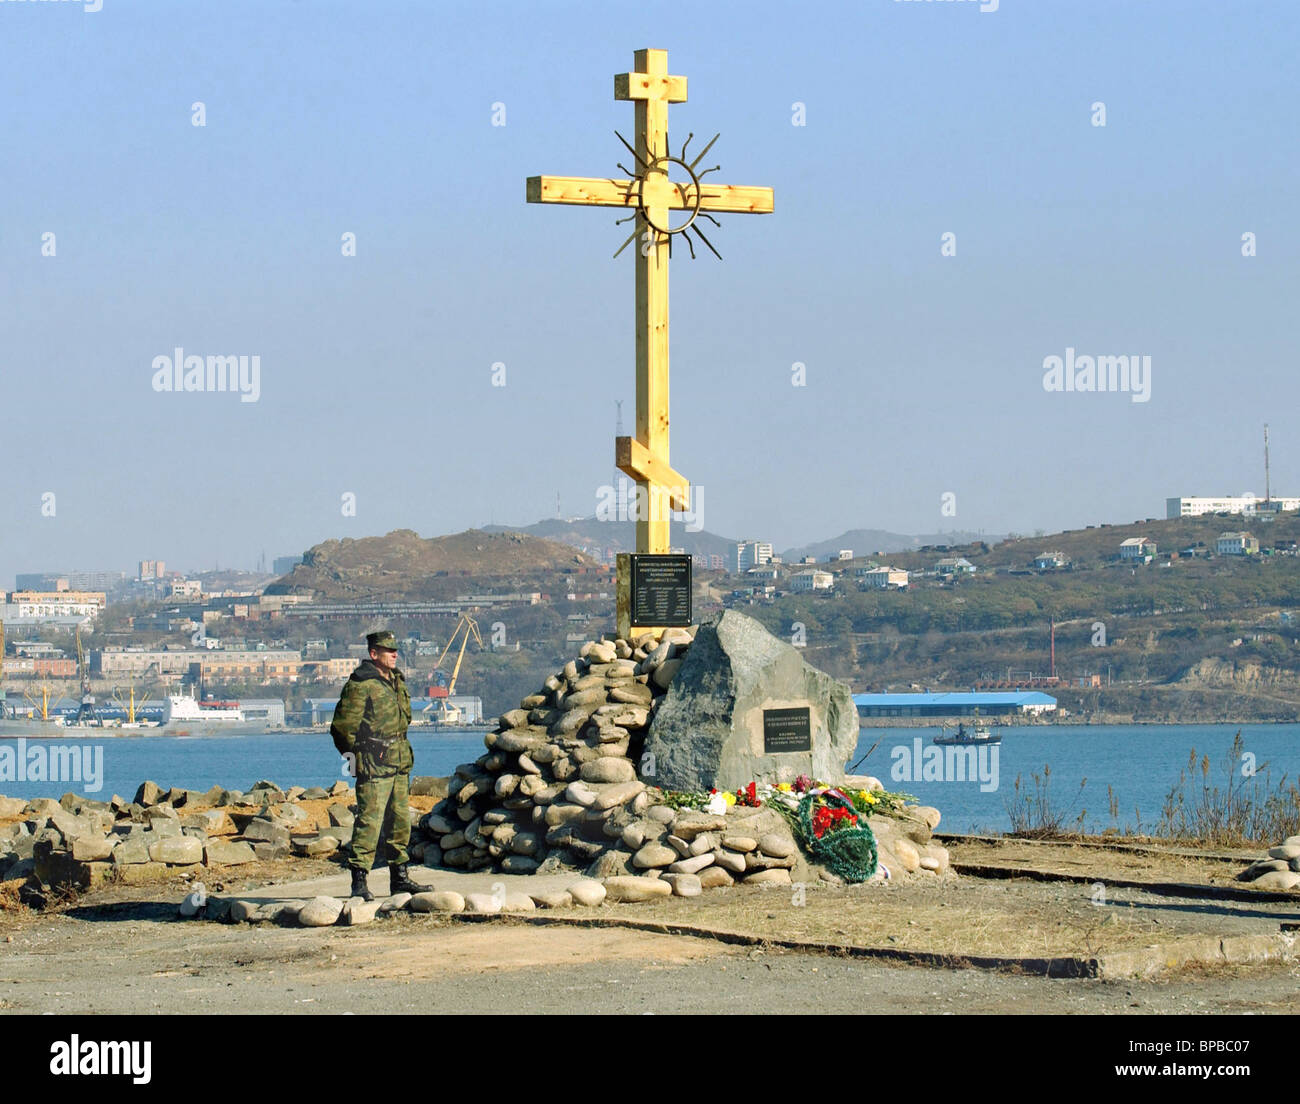 Vladivostok: wooden cross of the Memorial of the Concord and Conciliation , inaugurated on the Russkii island. - Stock Image